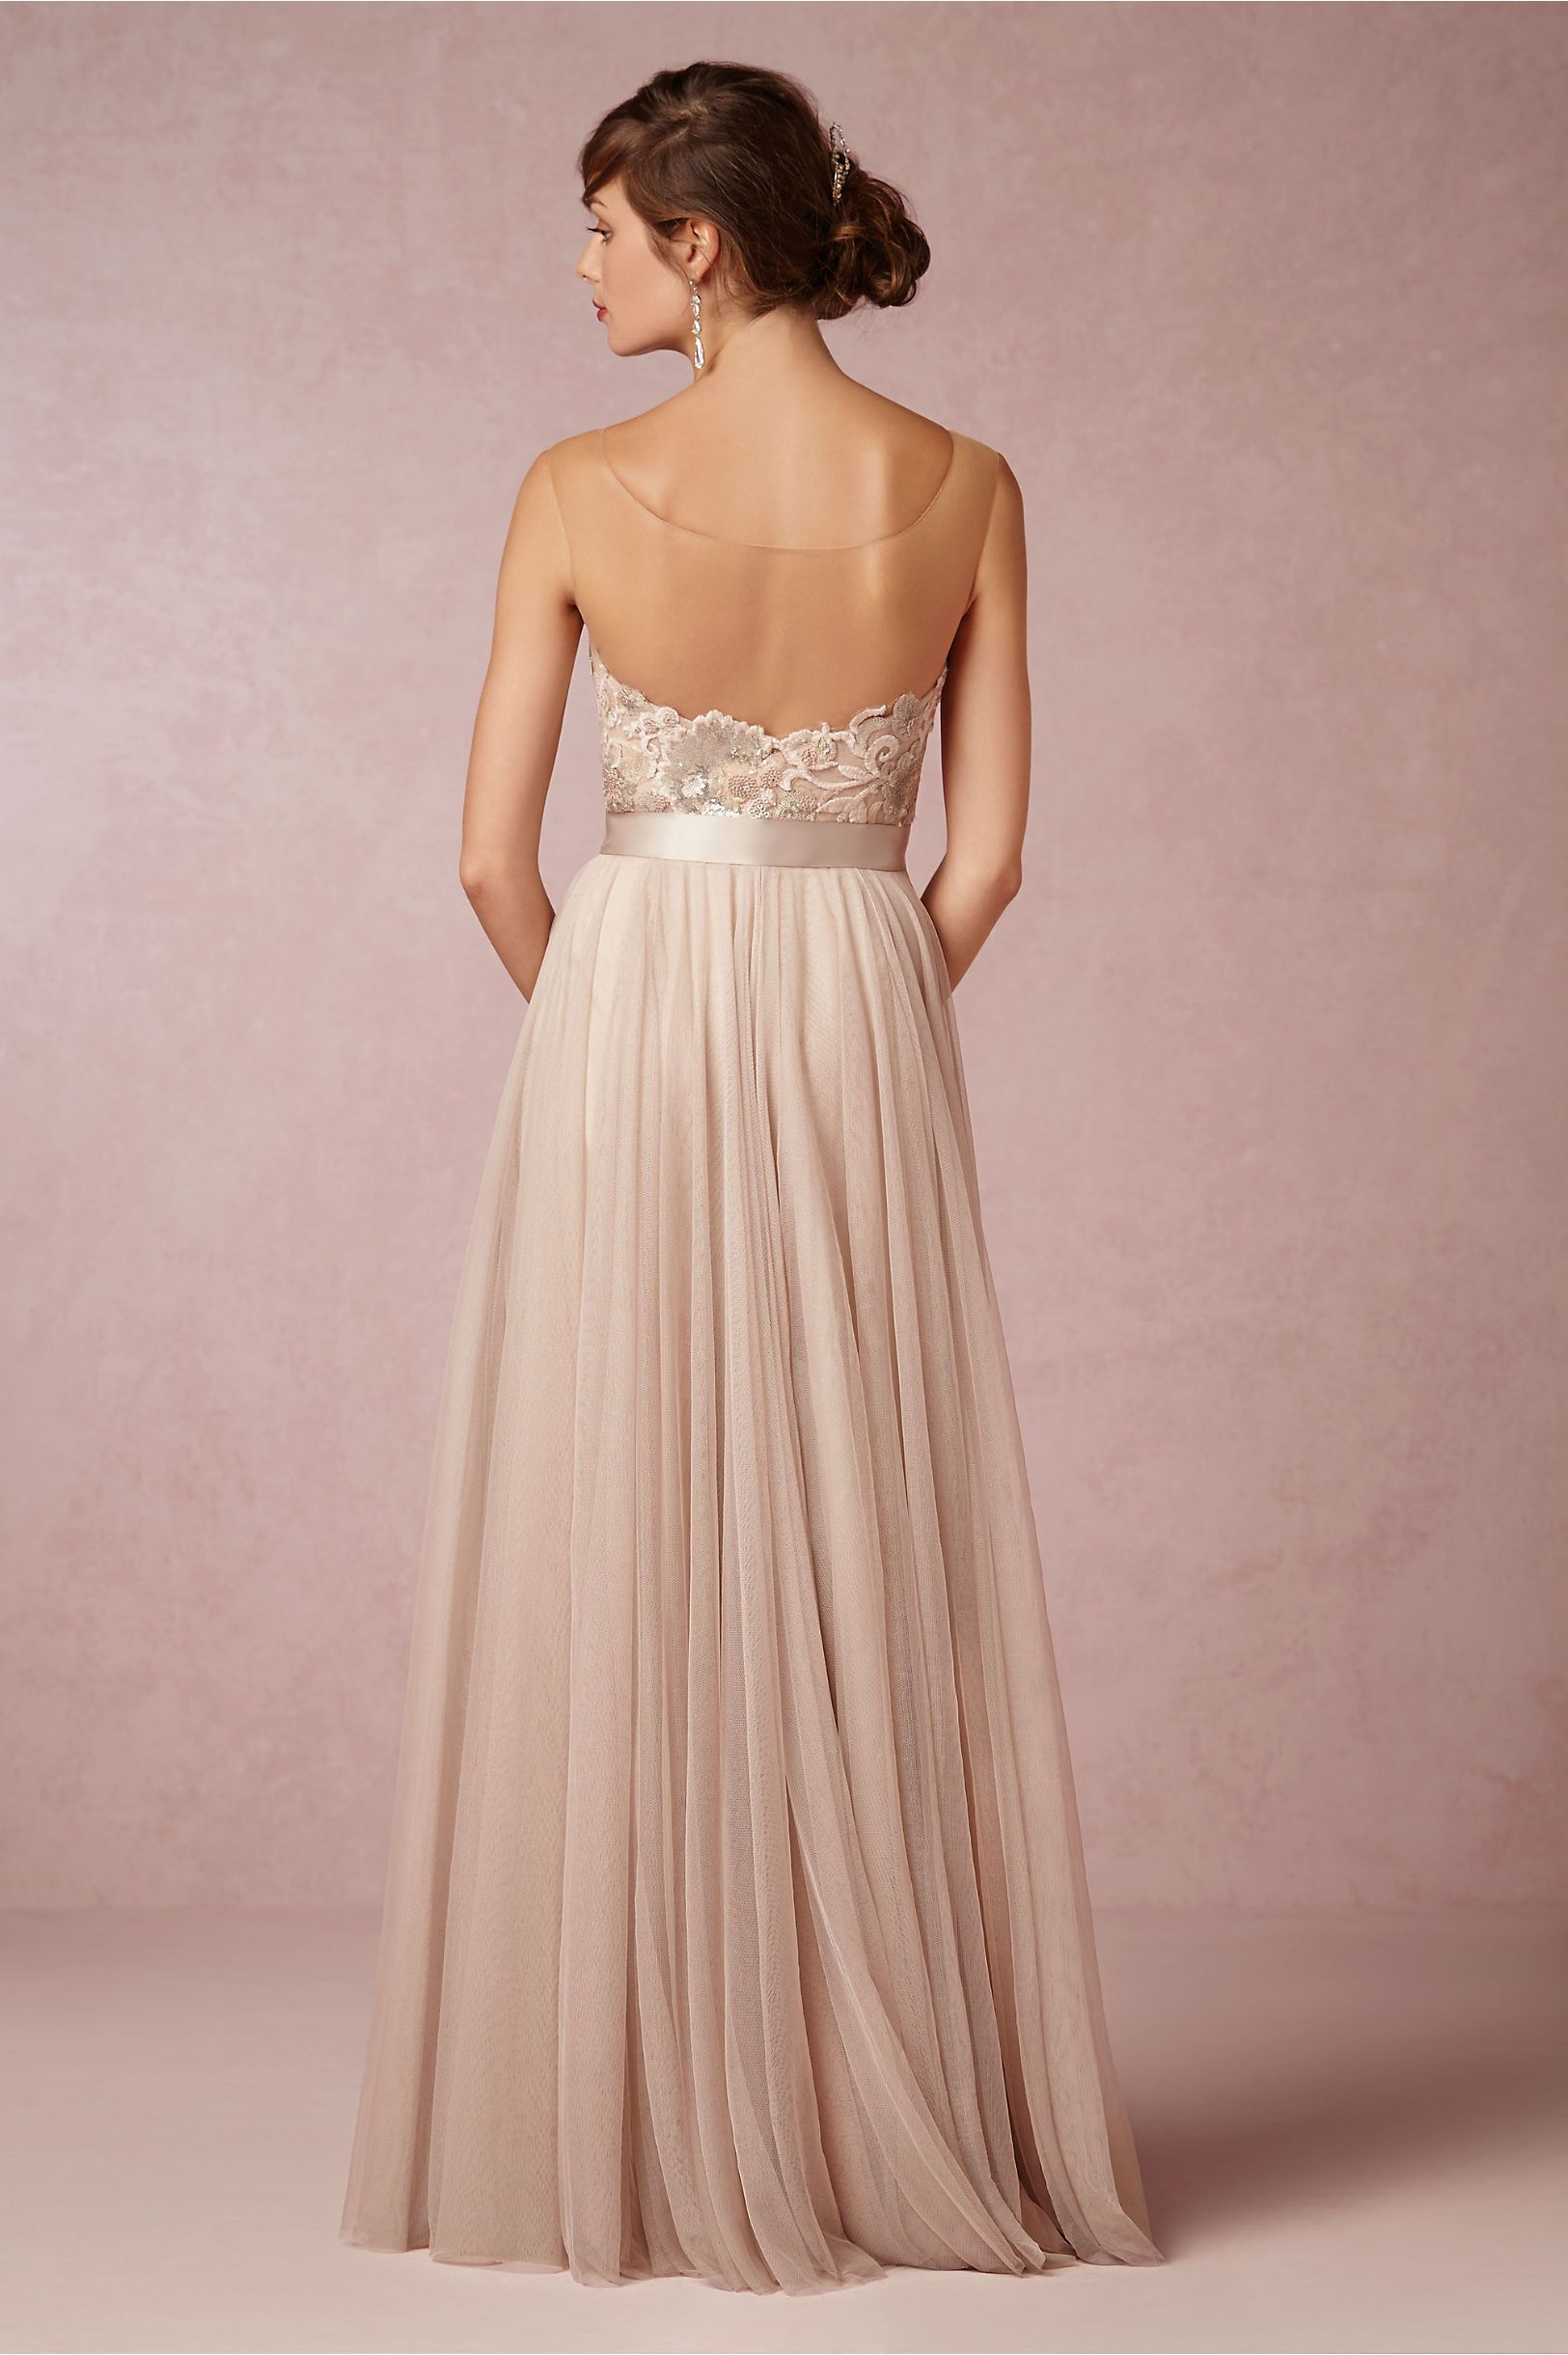 Lucca Gown from BHLDN | Wedding Dresses | Pinterest | Novios ...